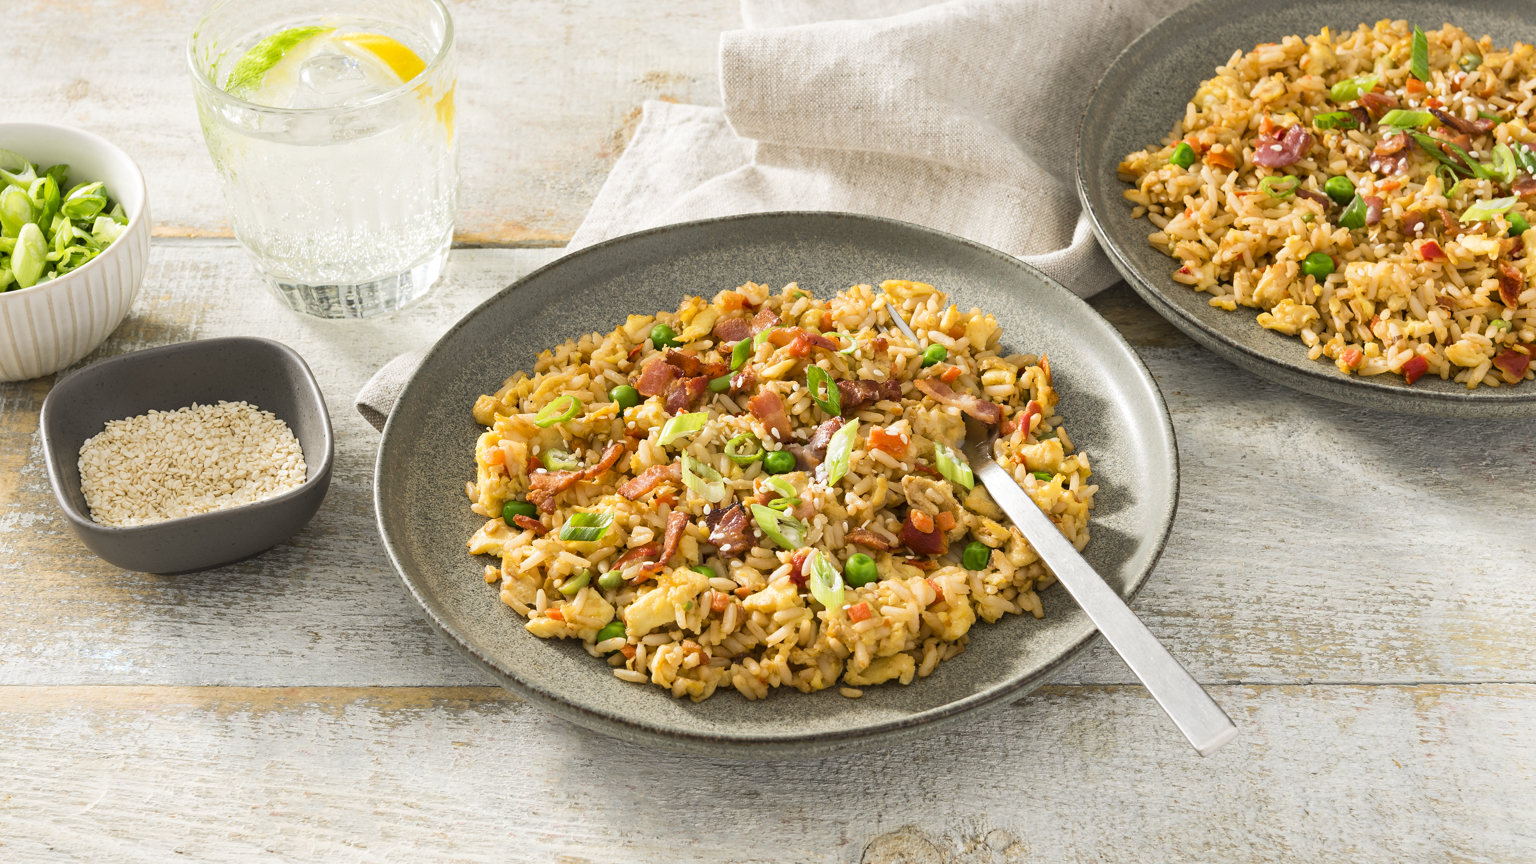 Bacon and Eggs Fried Rice